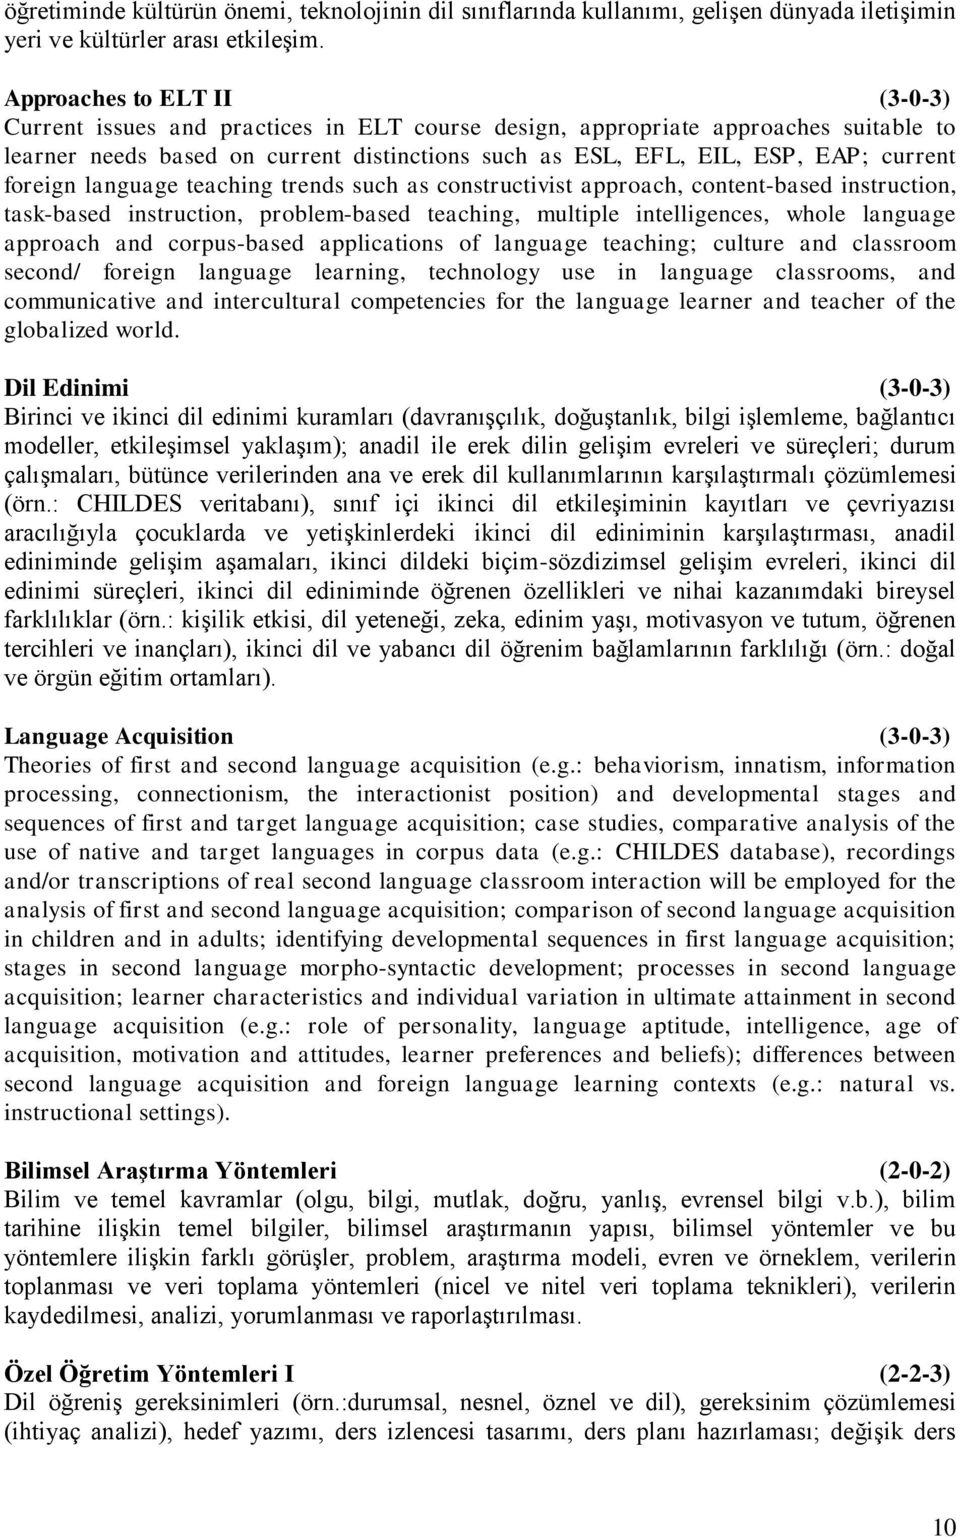 foreign language teaching trends such as constructivist approach, content-based instruction, task-based instruction, problem-based teaching, multiple intelligences, whole language approach and